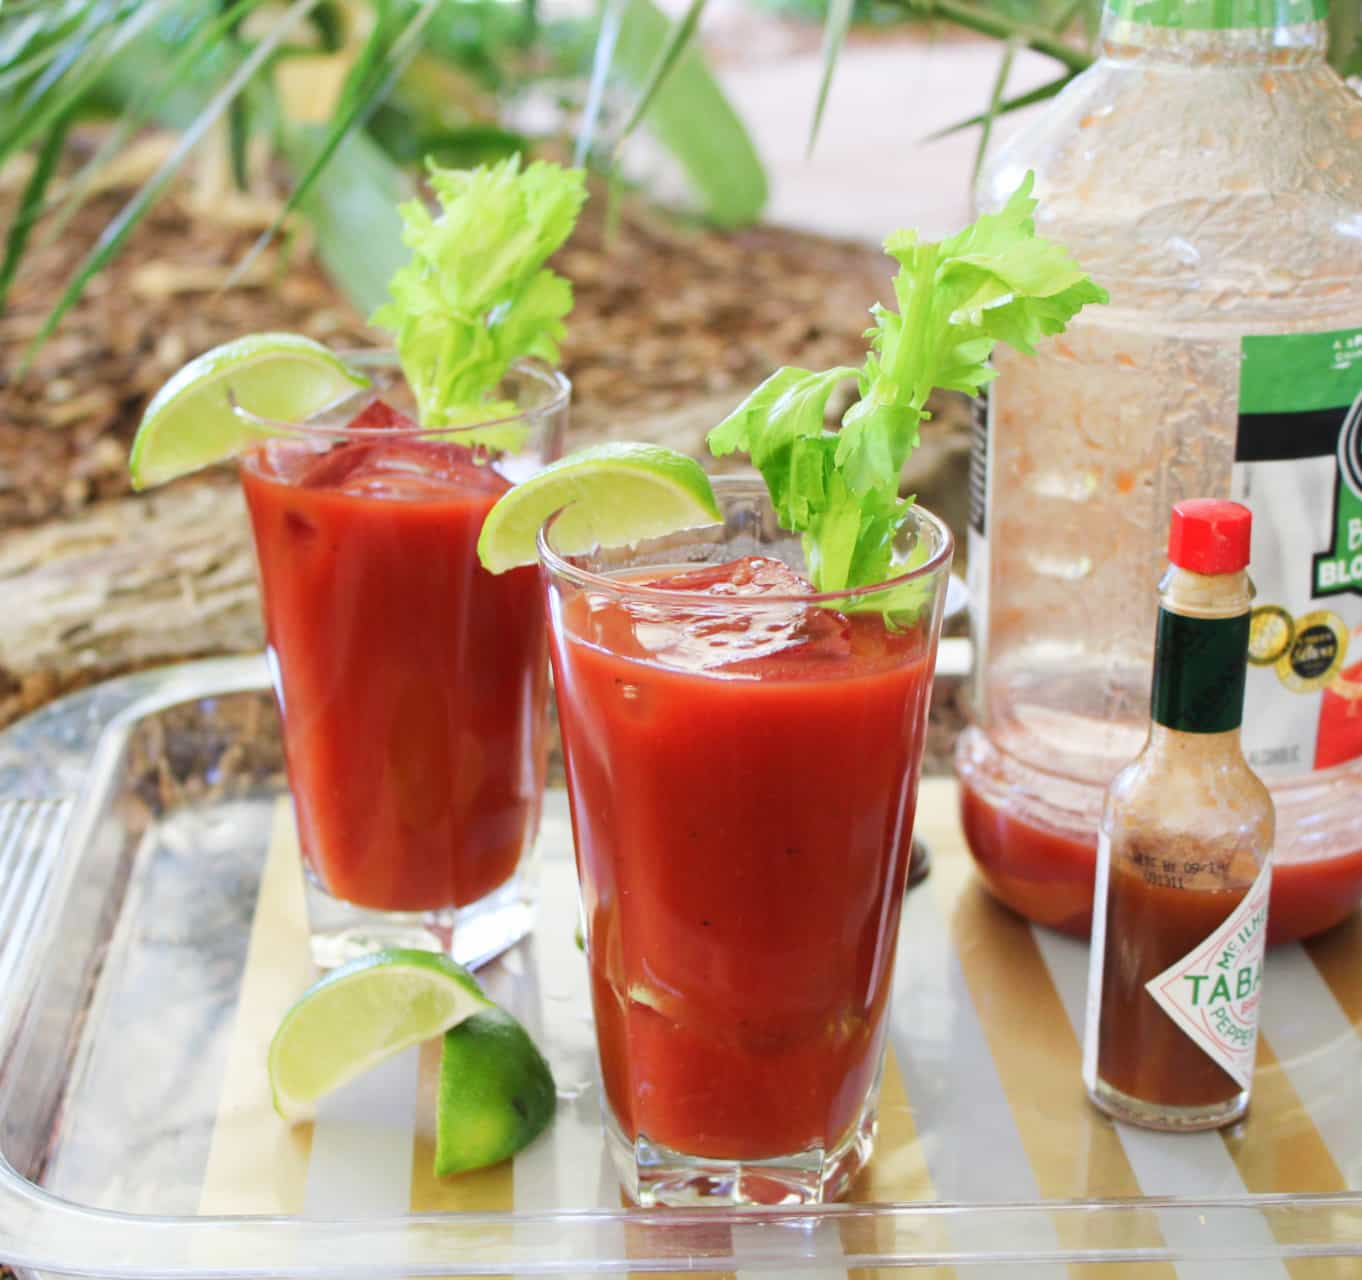 Camping Cocktails - The Bloody Mary! - The Spicy Apron